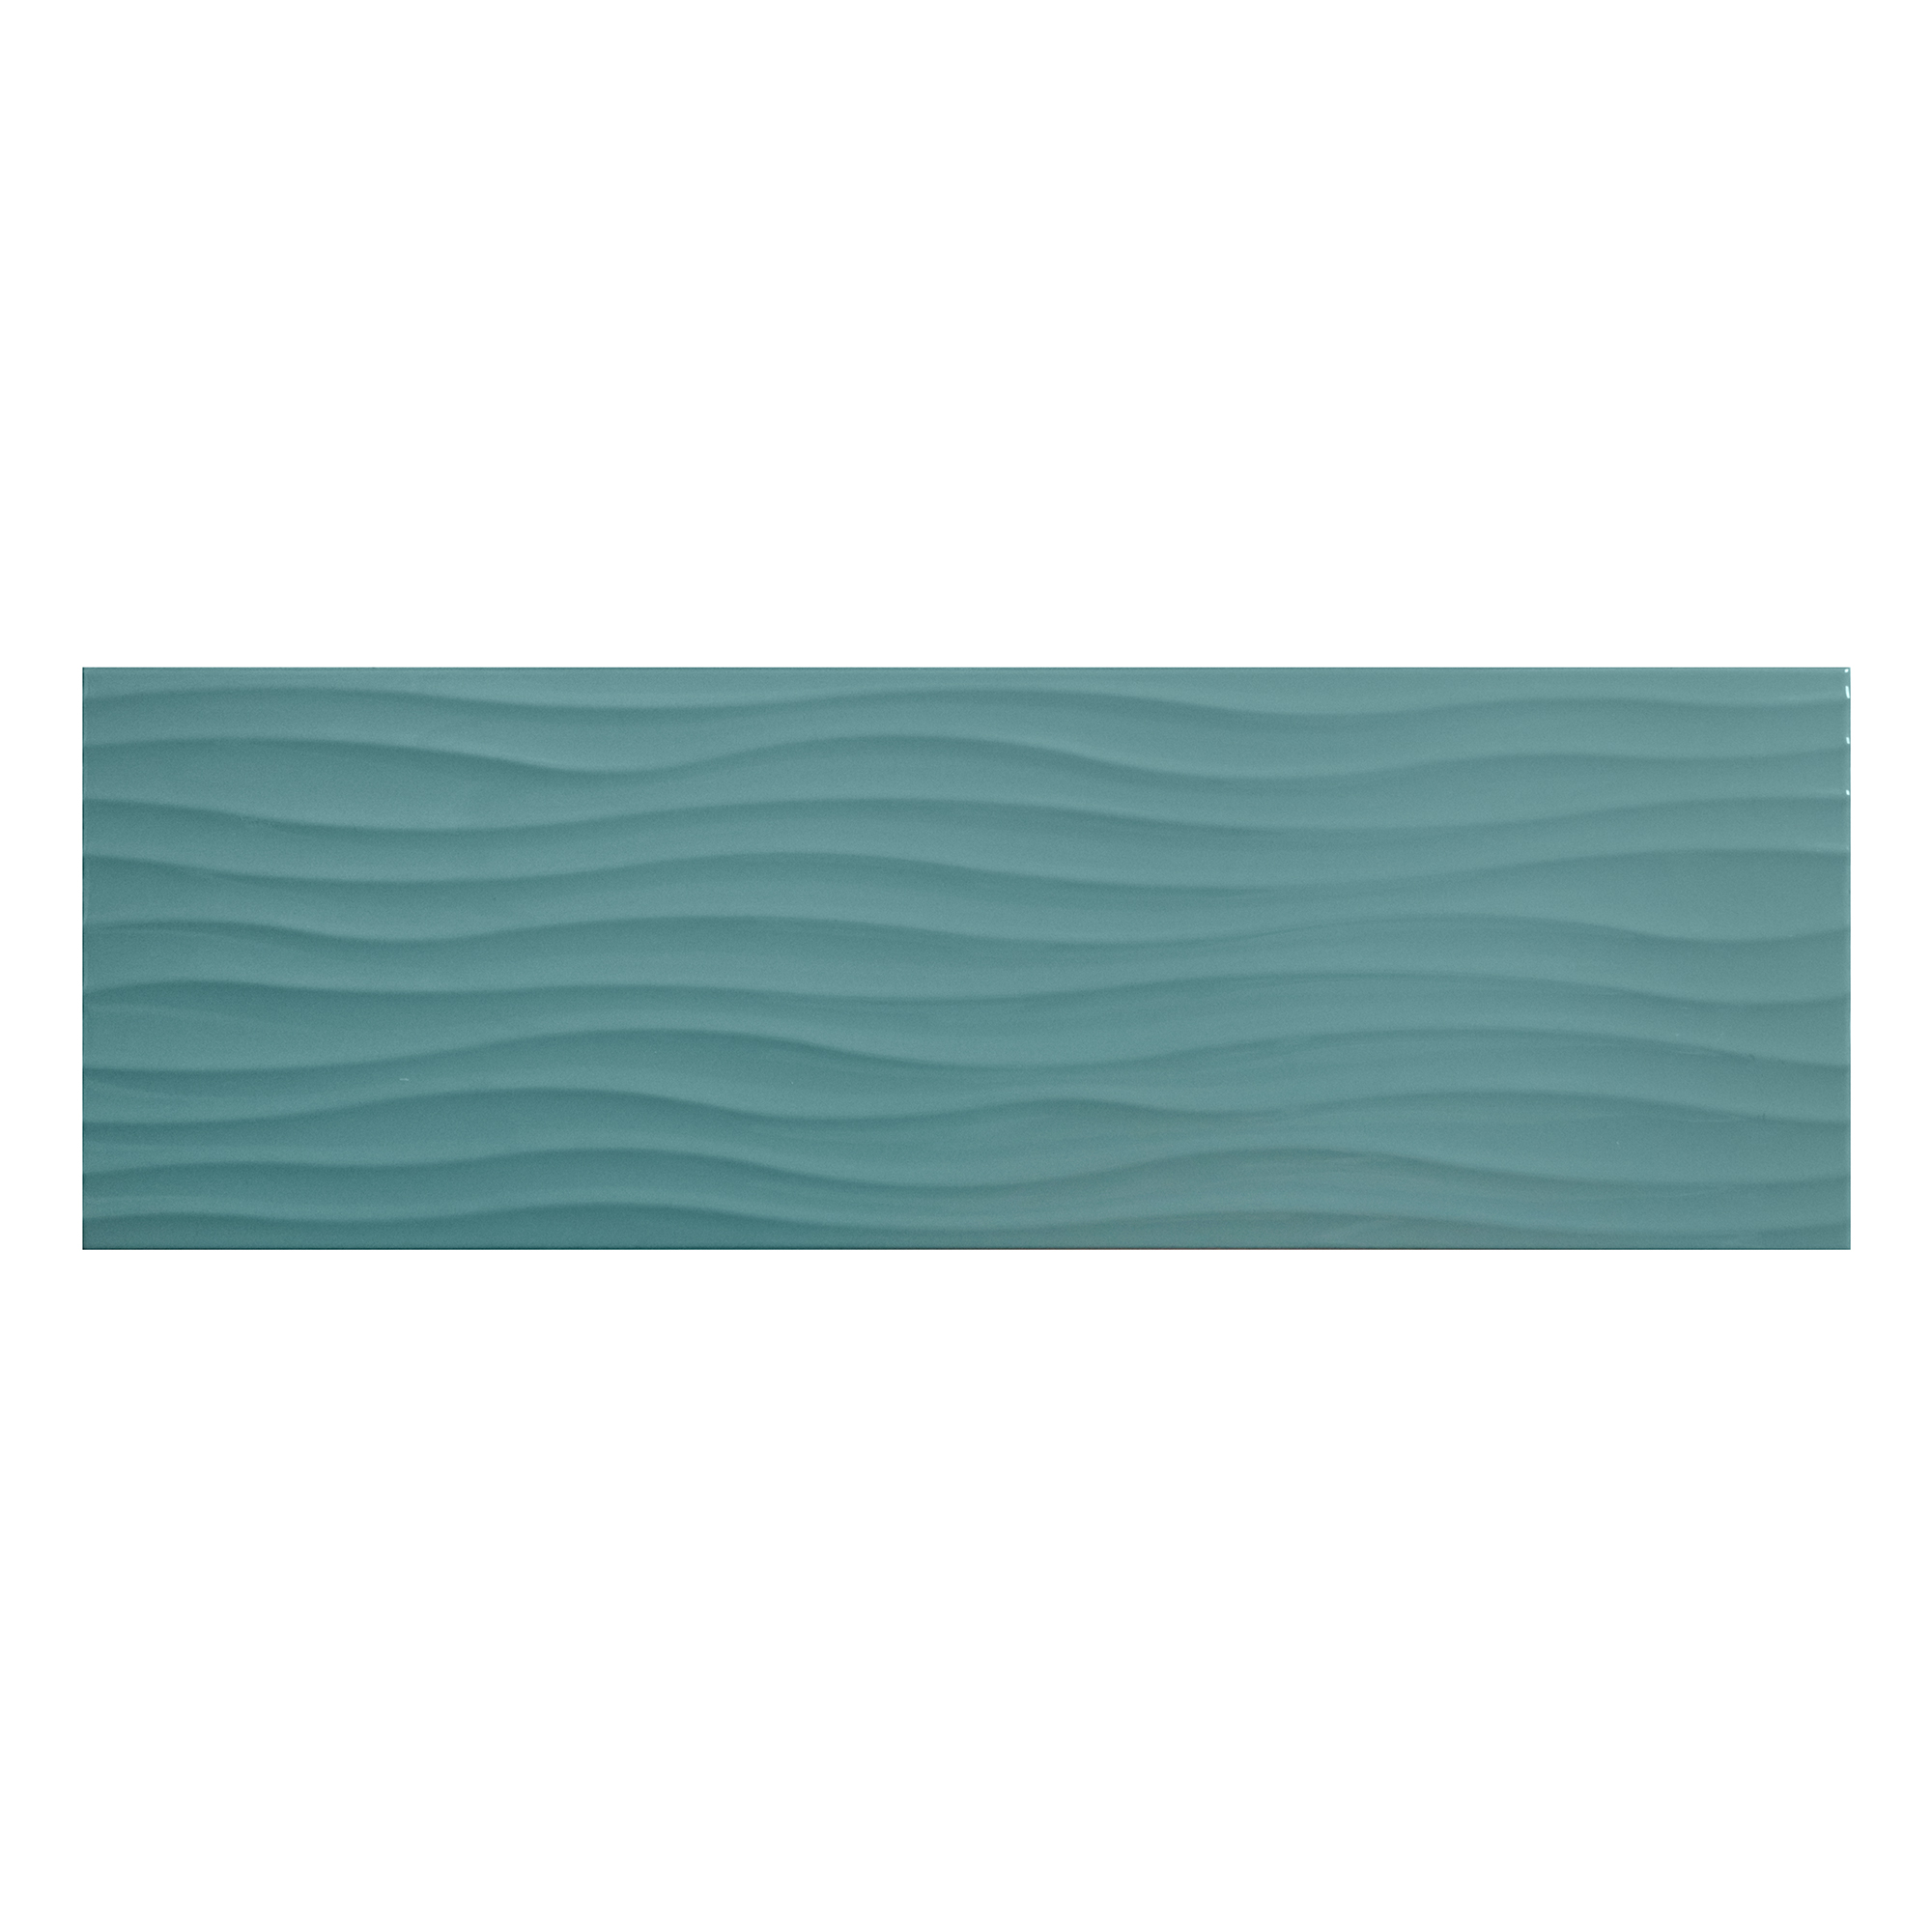 Плитка настенная Cifre color line emerald 25x75 плитка настенная cifre relieve accord white 25x75